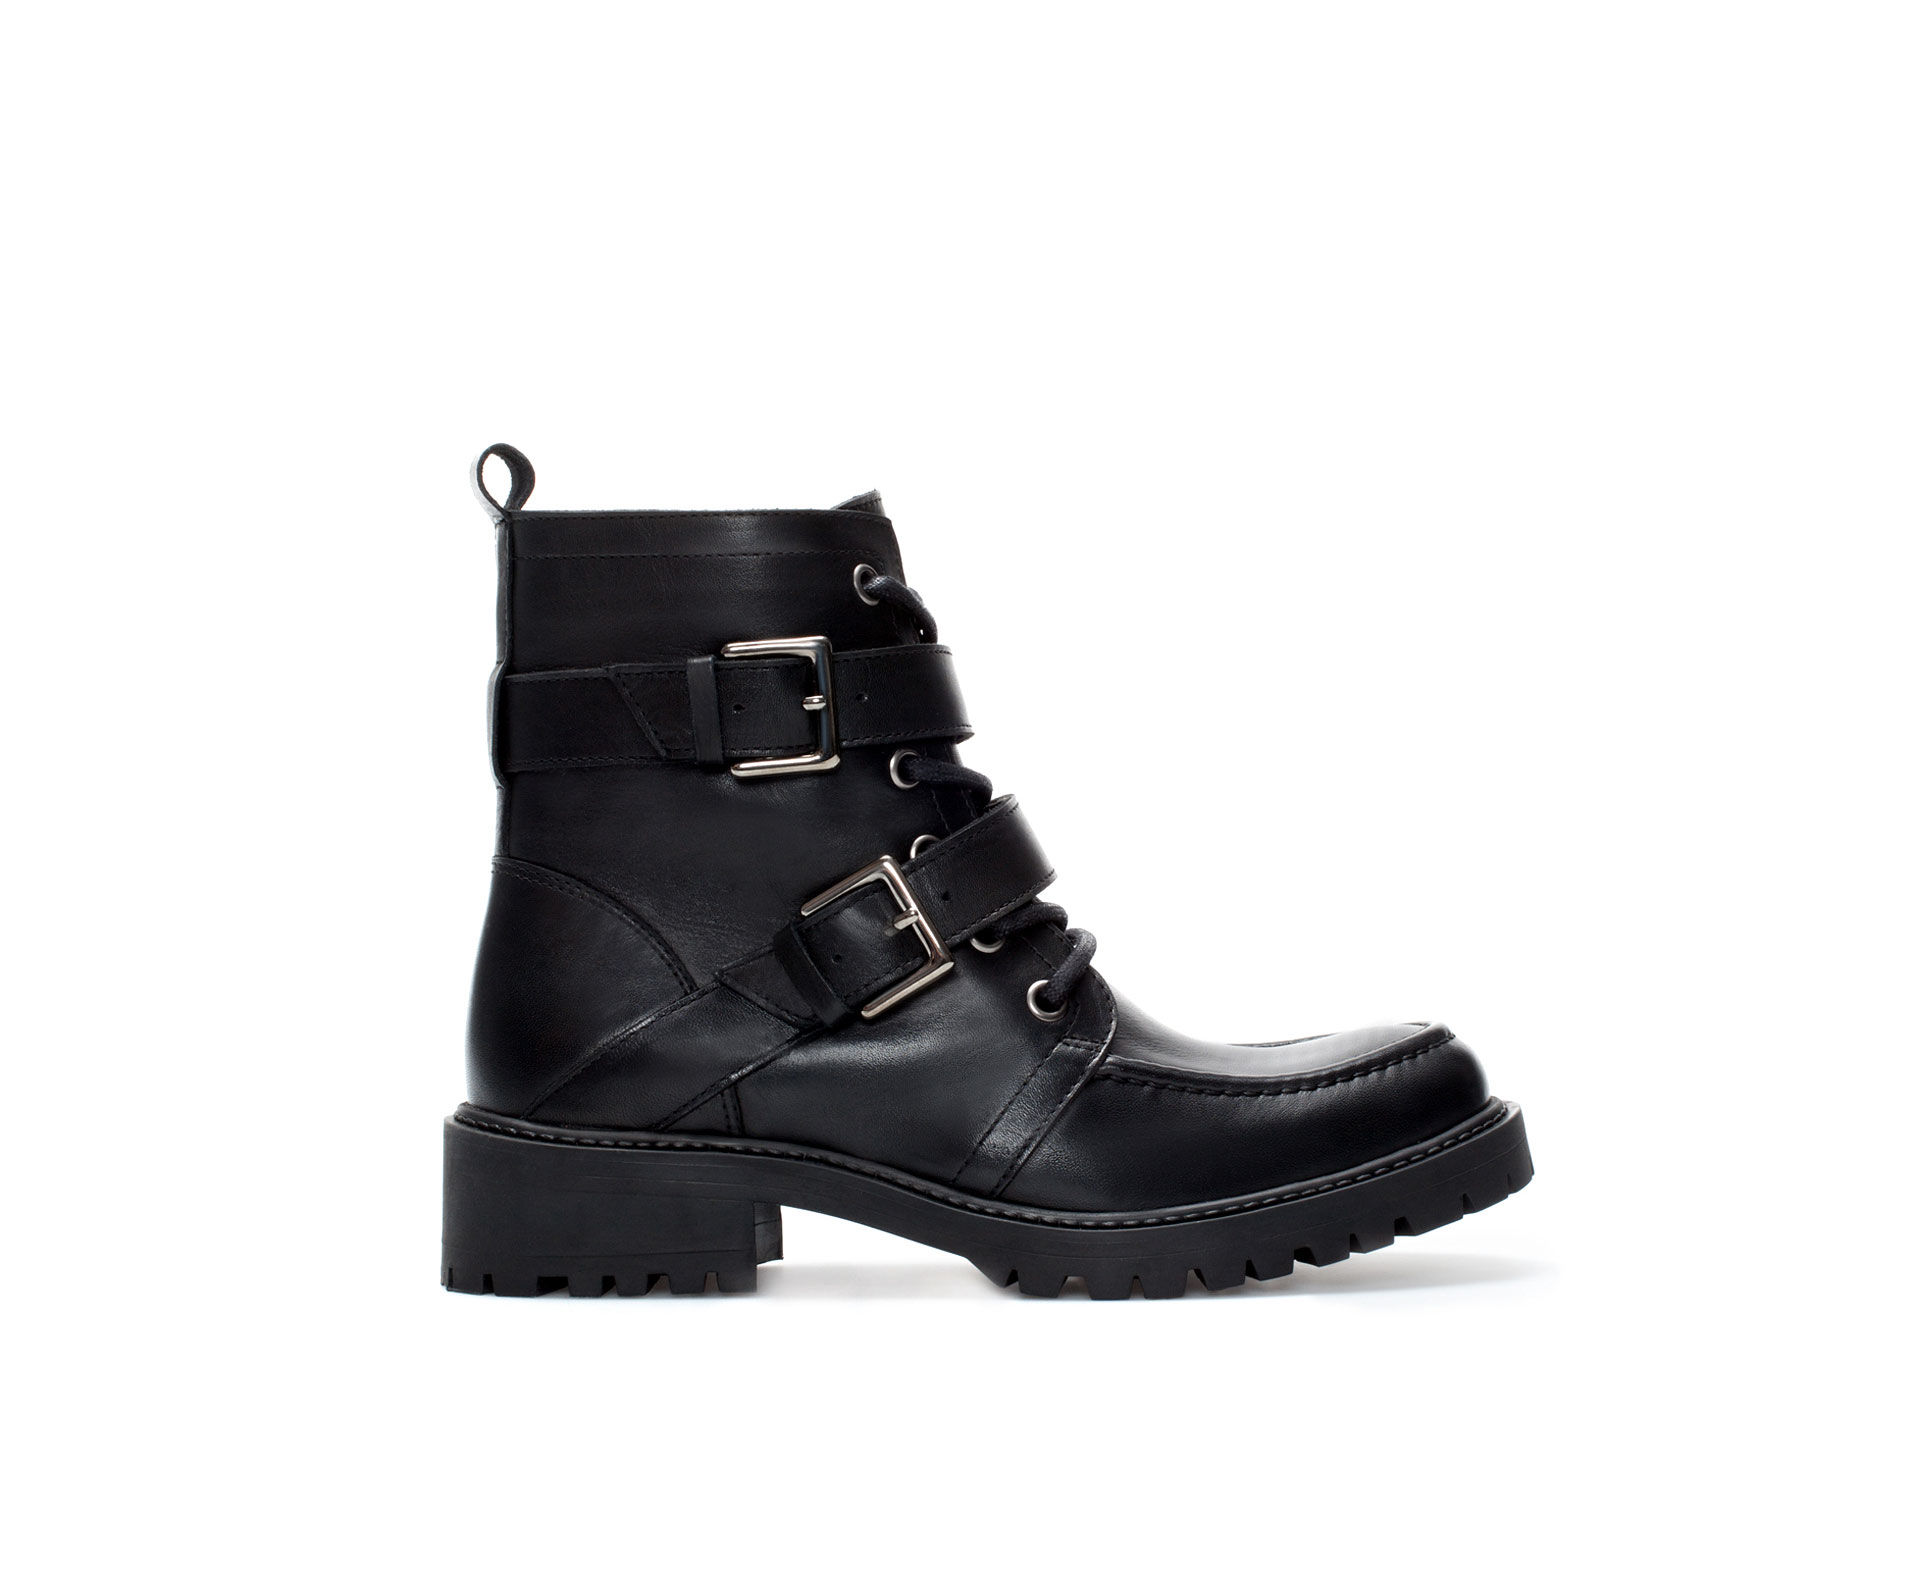 Zara Leather Lace Up Ankle Boot in Black | Lyst